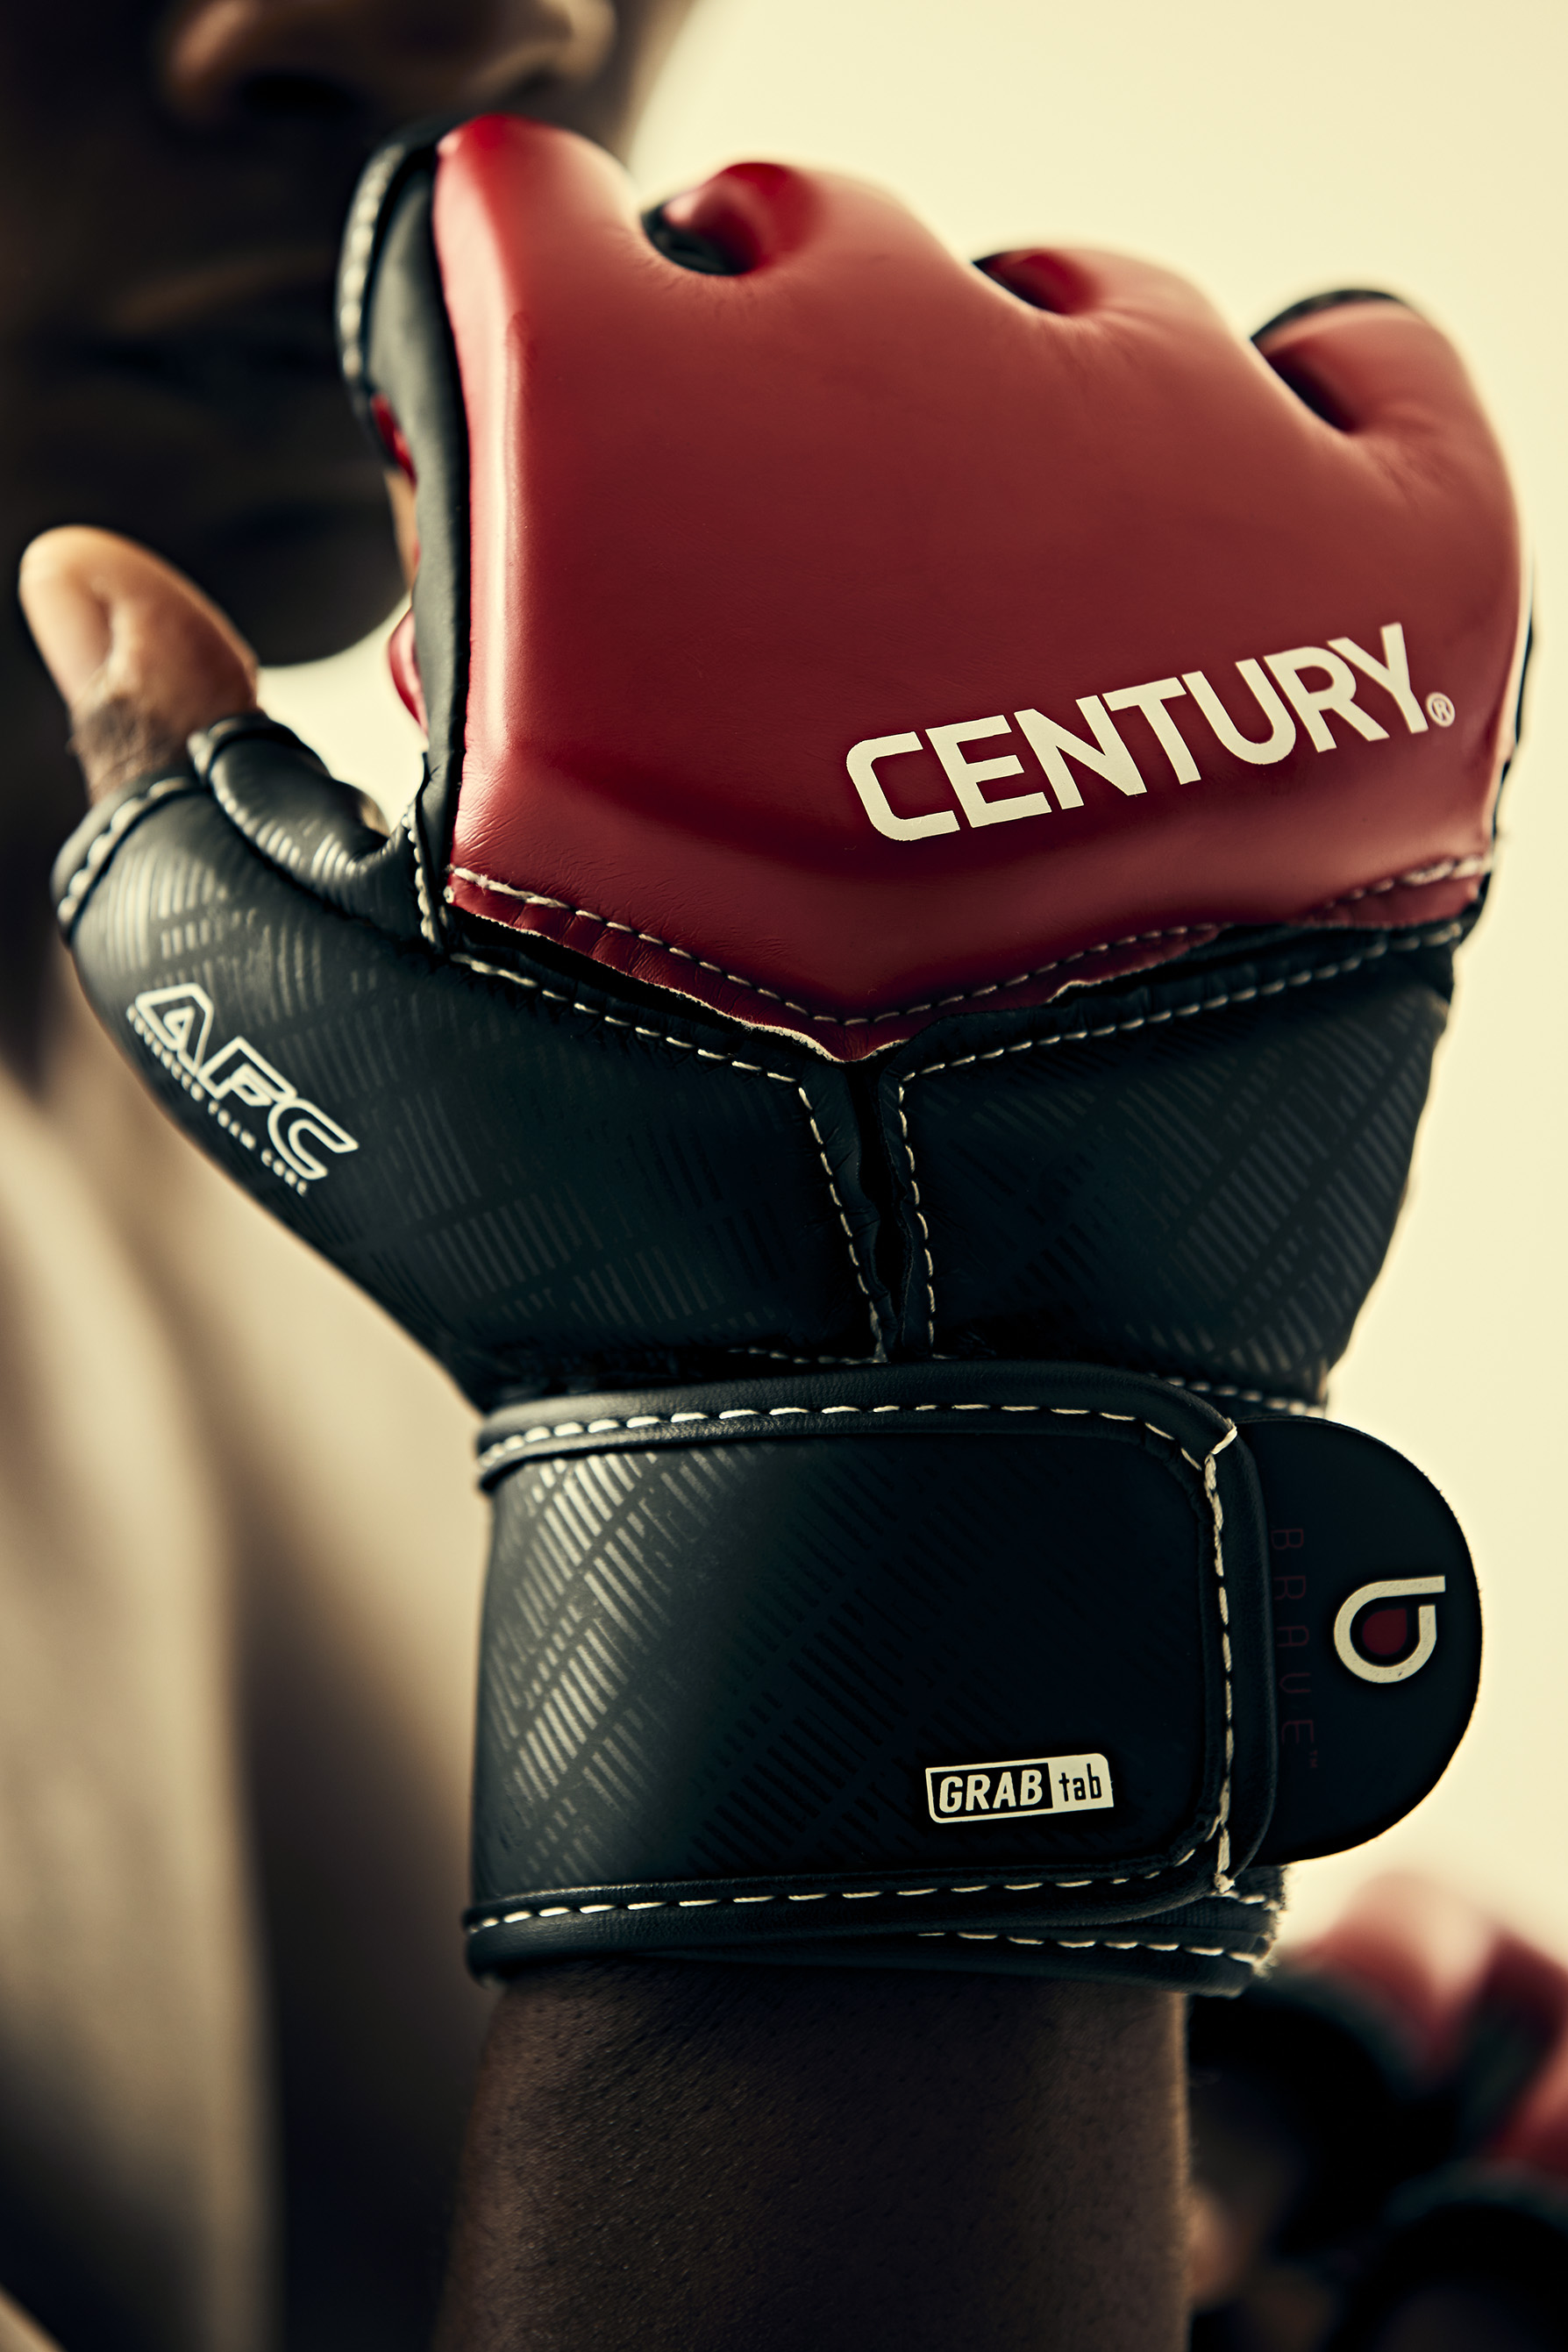 08222020_CebturyTestGloves03281-rt